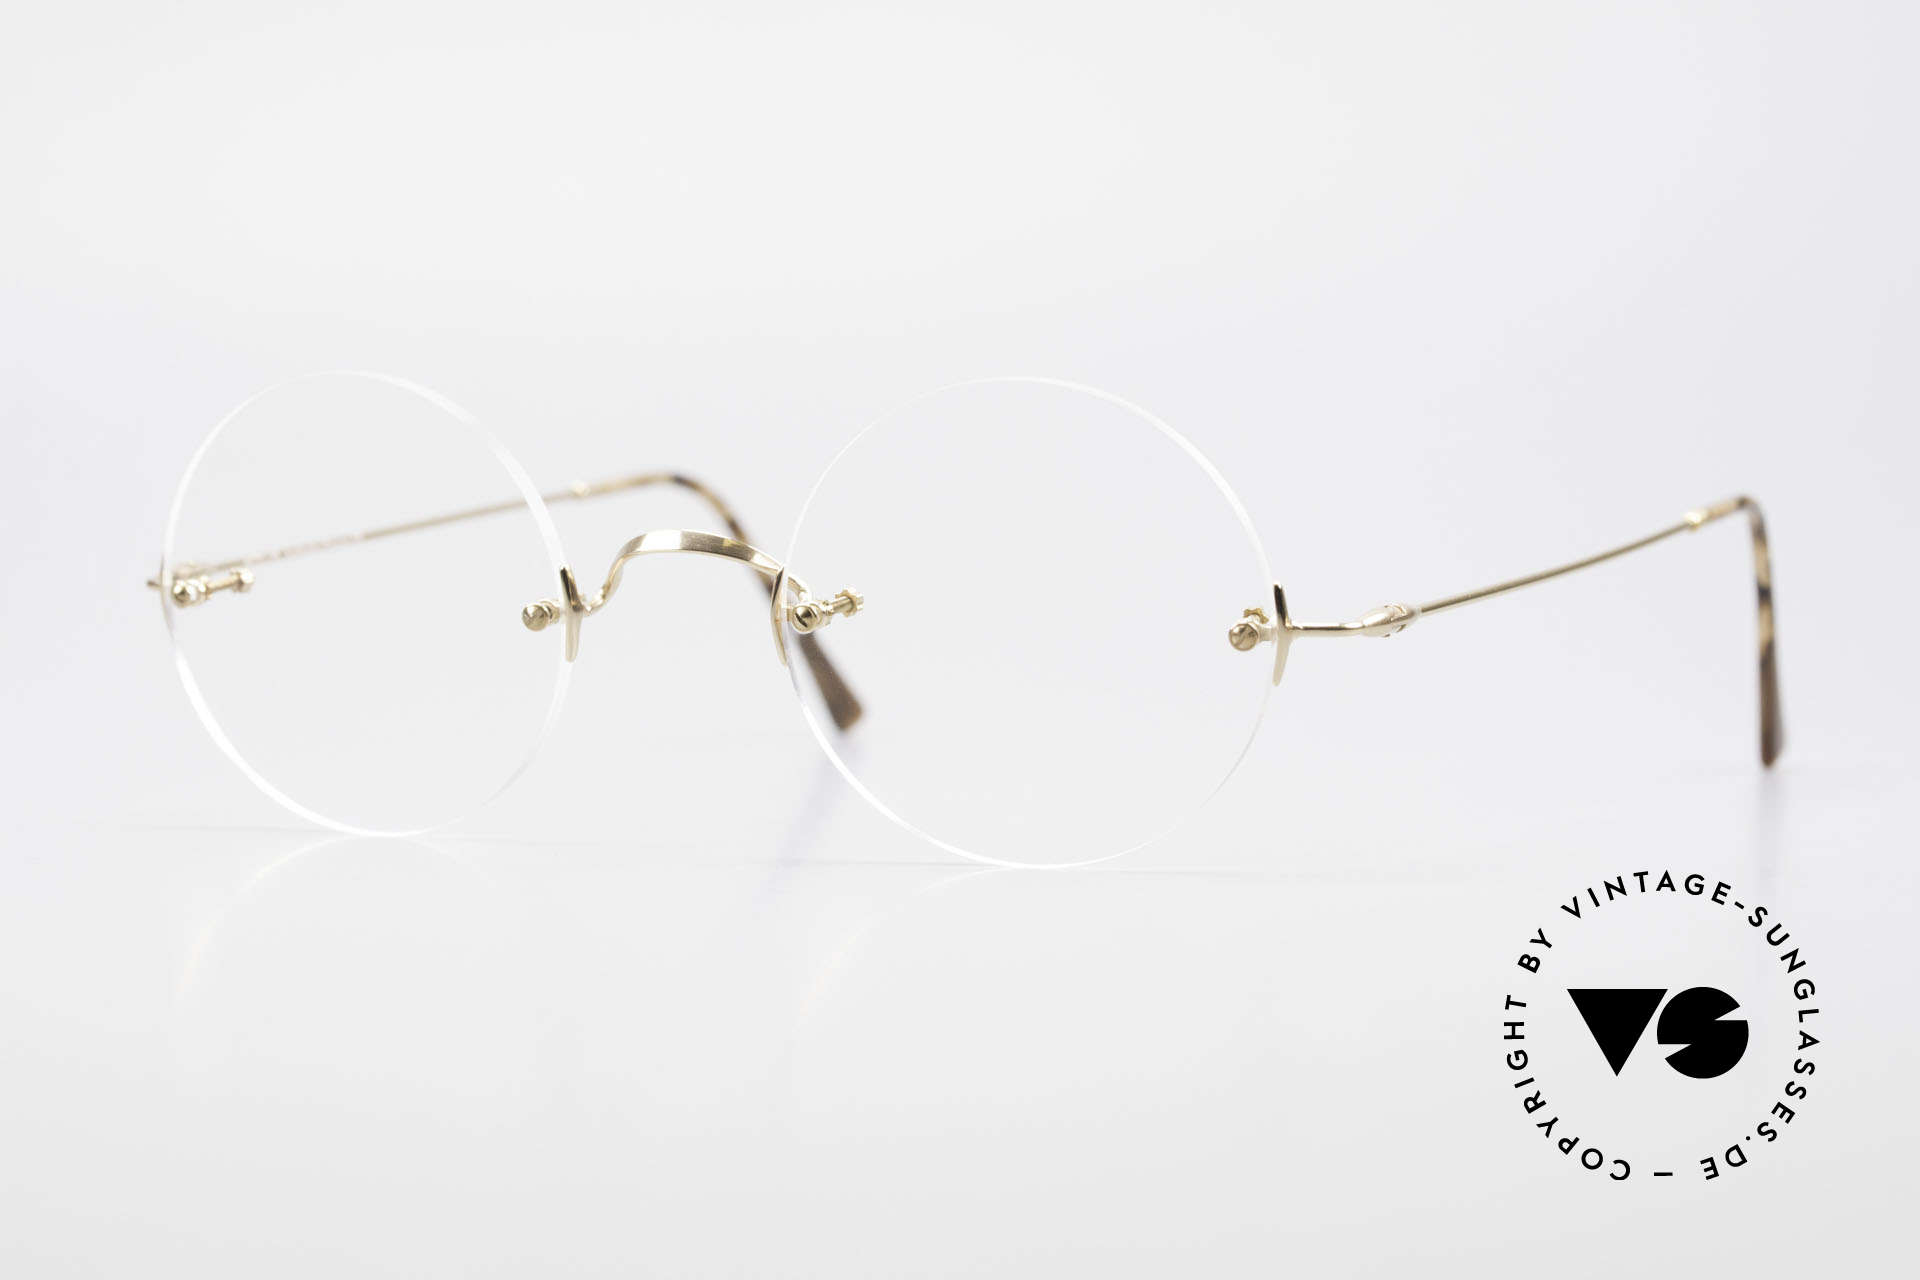 Lunor Classic Round GP Steve Jobs Glasses Rimless, LUNOR Classic Round is THE STEVE JOBS EYEGLASSES, Made for Men and Women